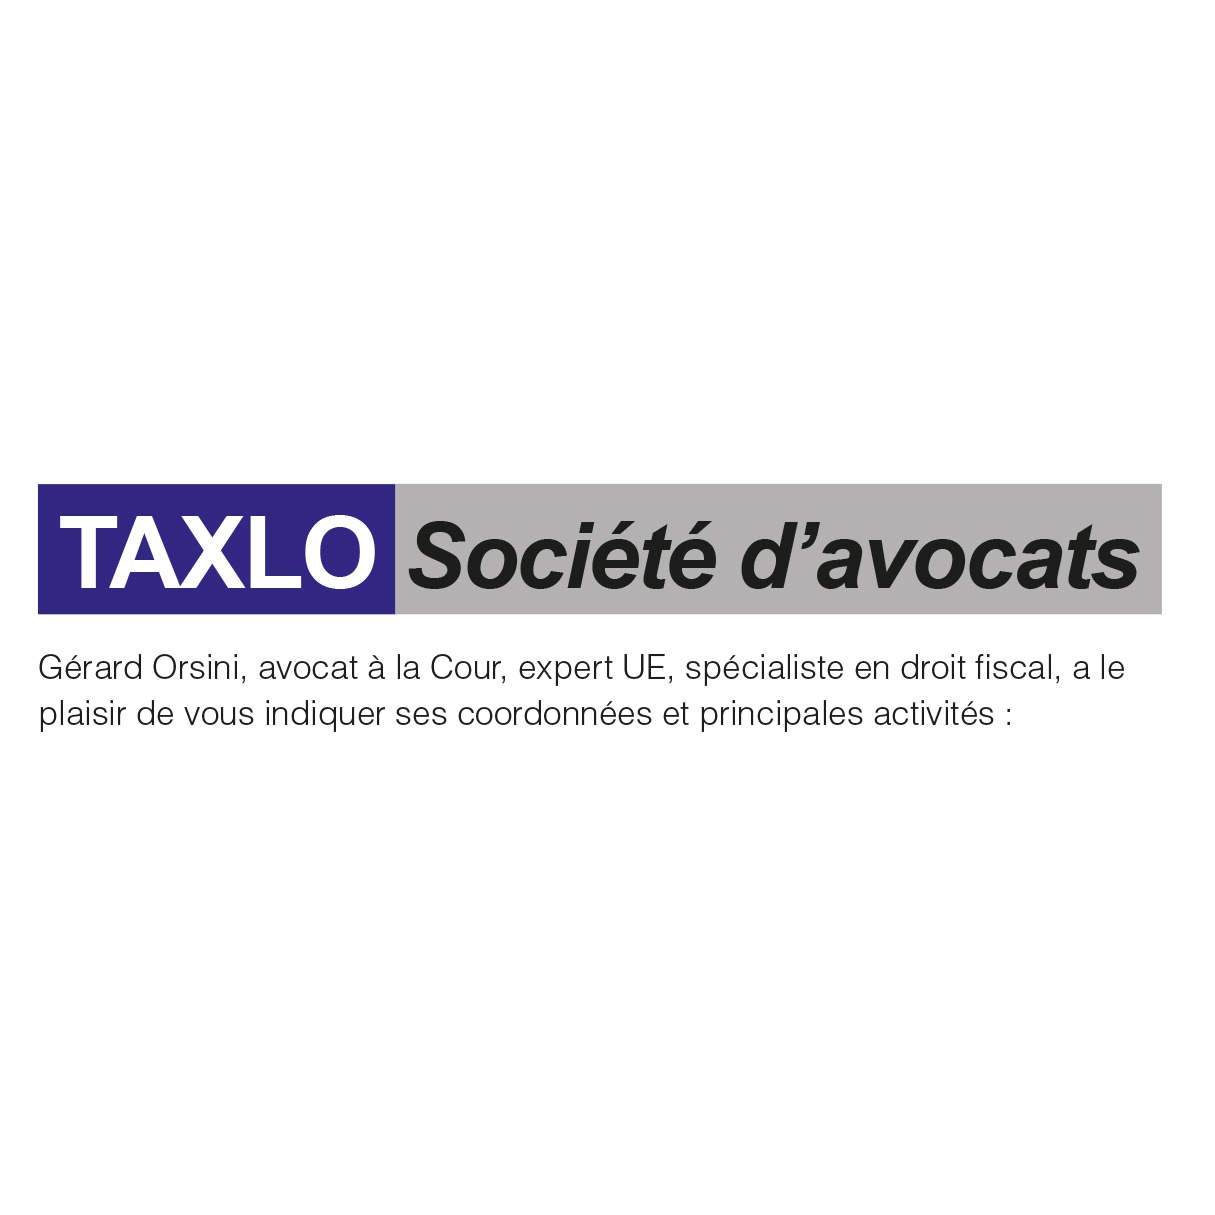 the Taxlo logo.